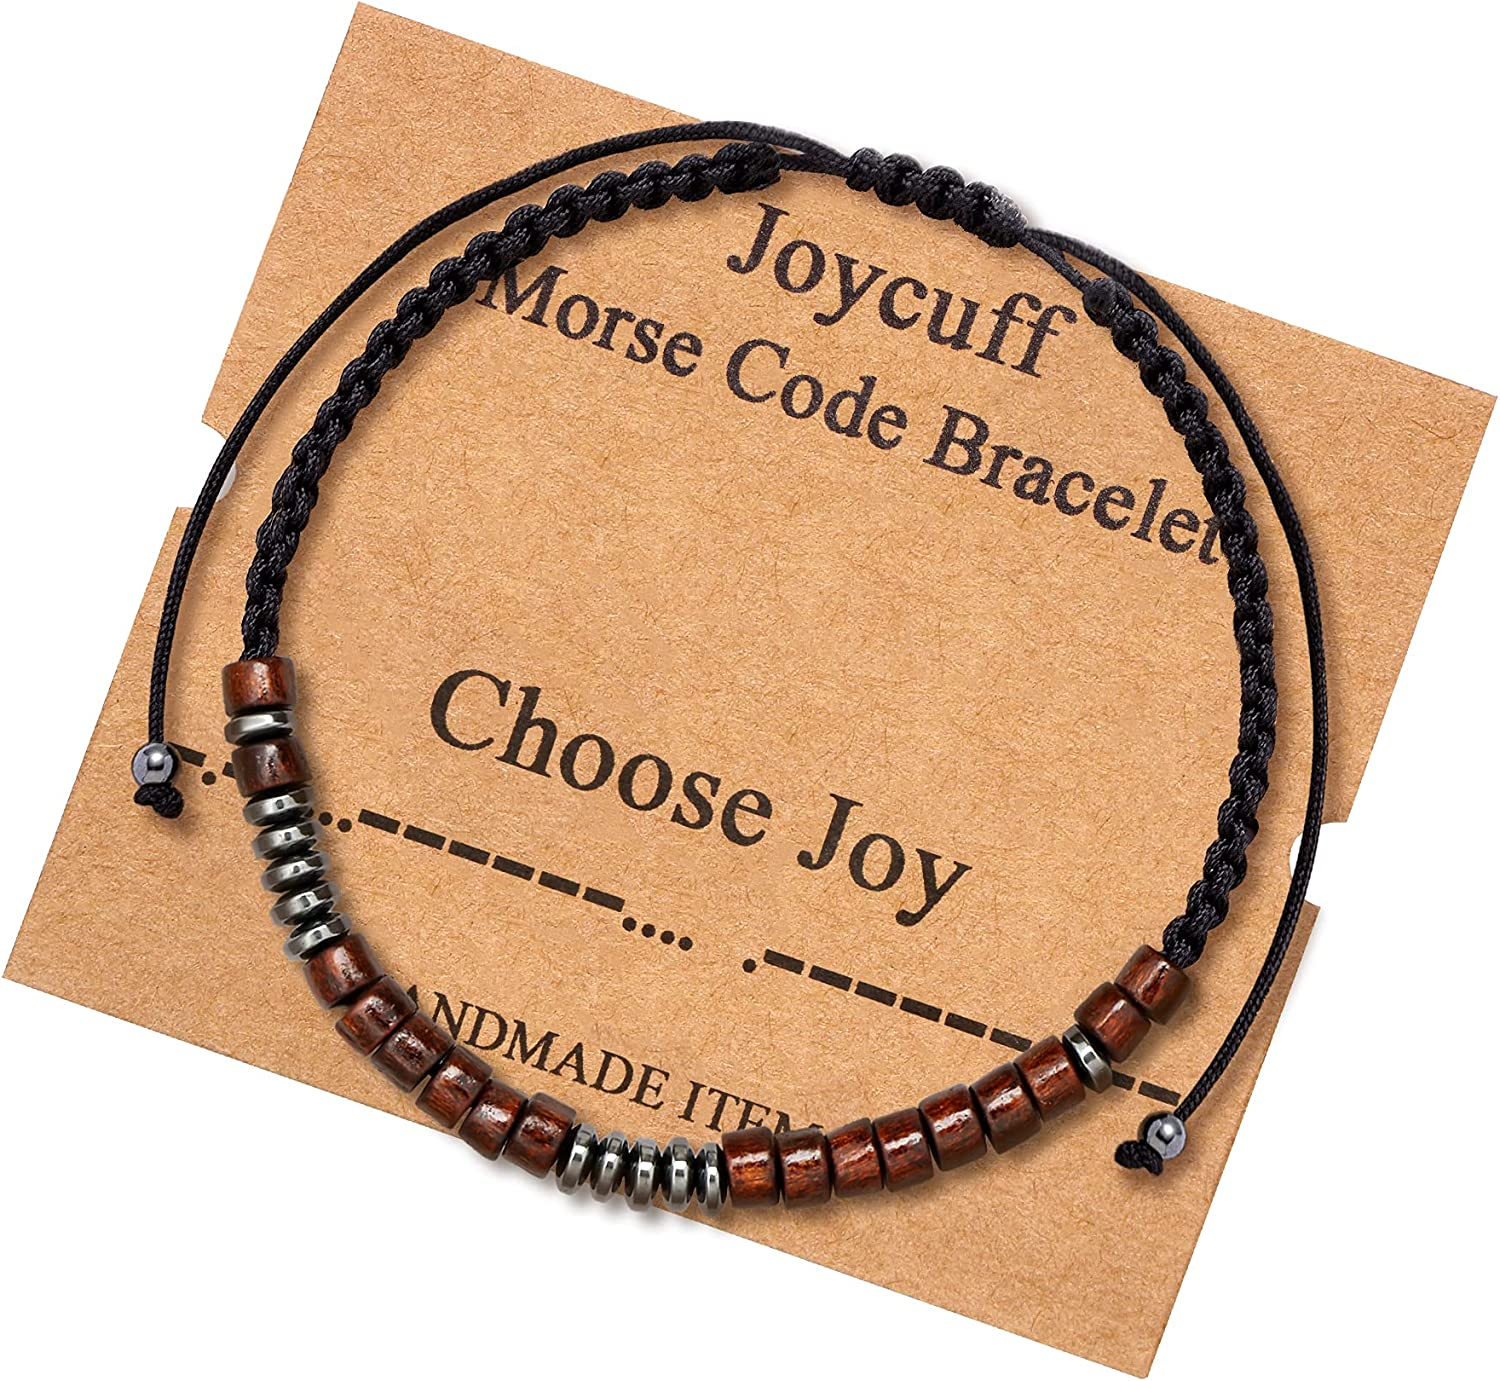 Inspirational Morse Code Bracelet for Women Secret Message Wood Beads with Cord Jewelry Birthday Christmas Mother's Day Gift for Her Mother Grandmother